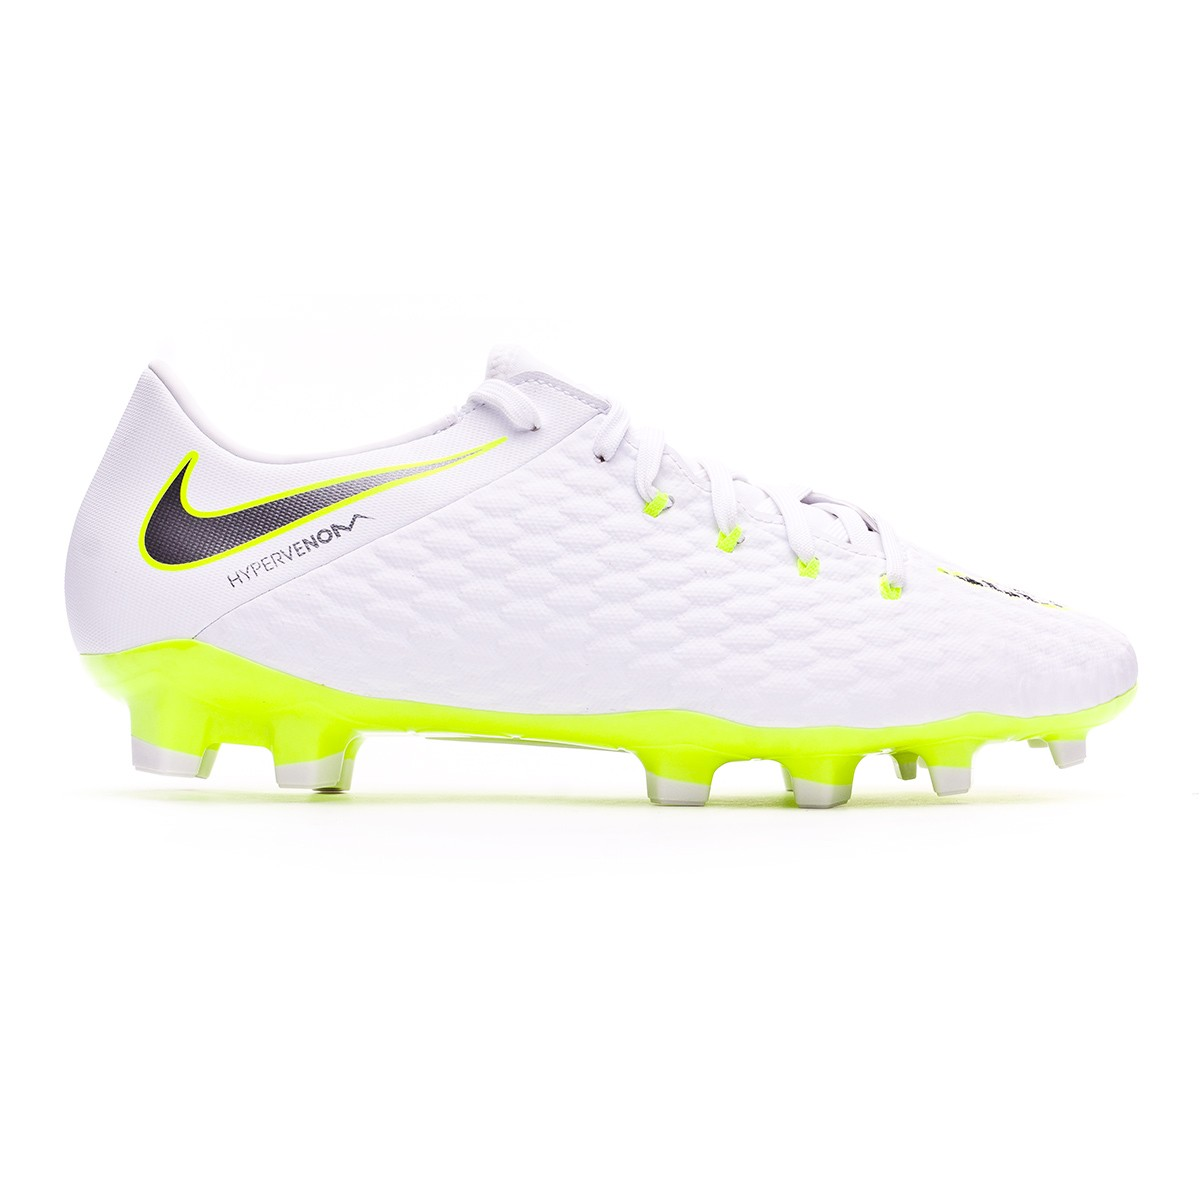 ec166b45c1e Football Boots Nike Hypervenom Phantom III Academy FG White-Metallic cool  grey-Volt-Metallic cool g - Football store Fútbol Emotion